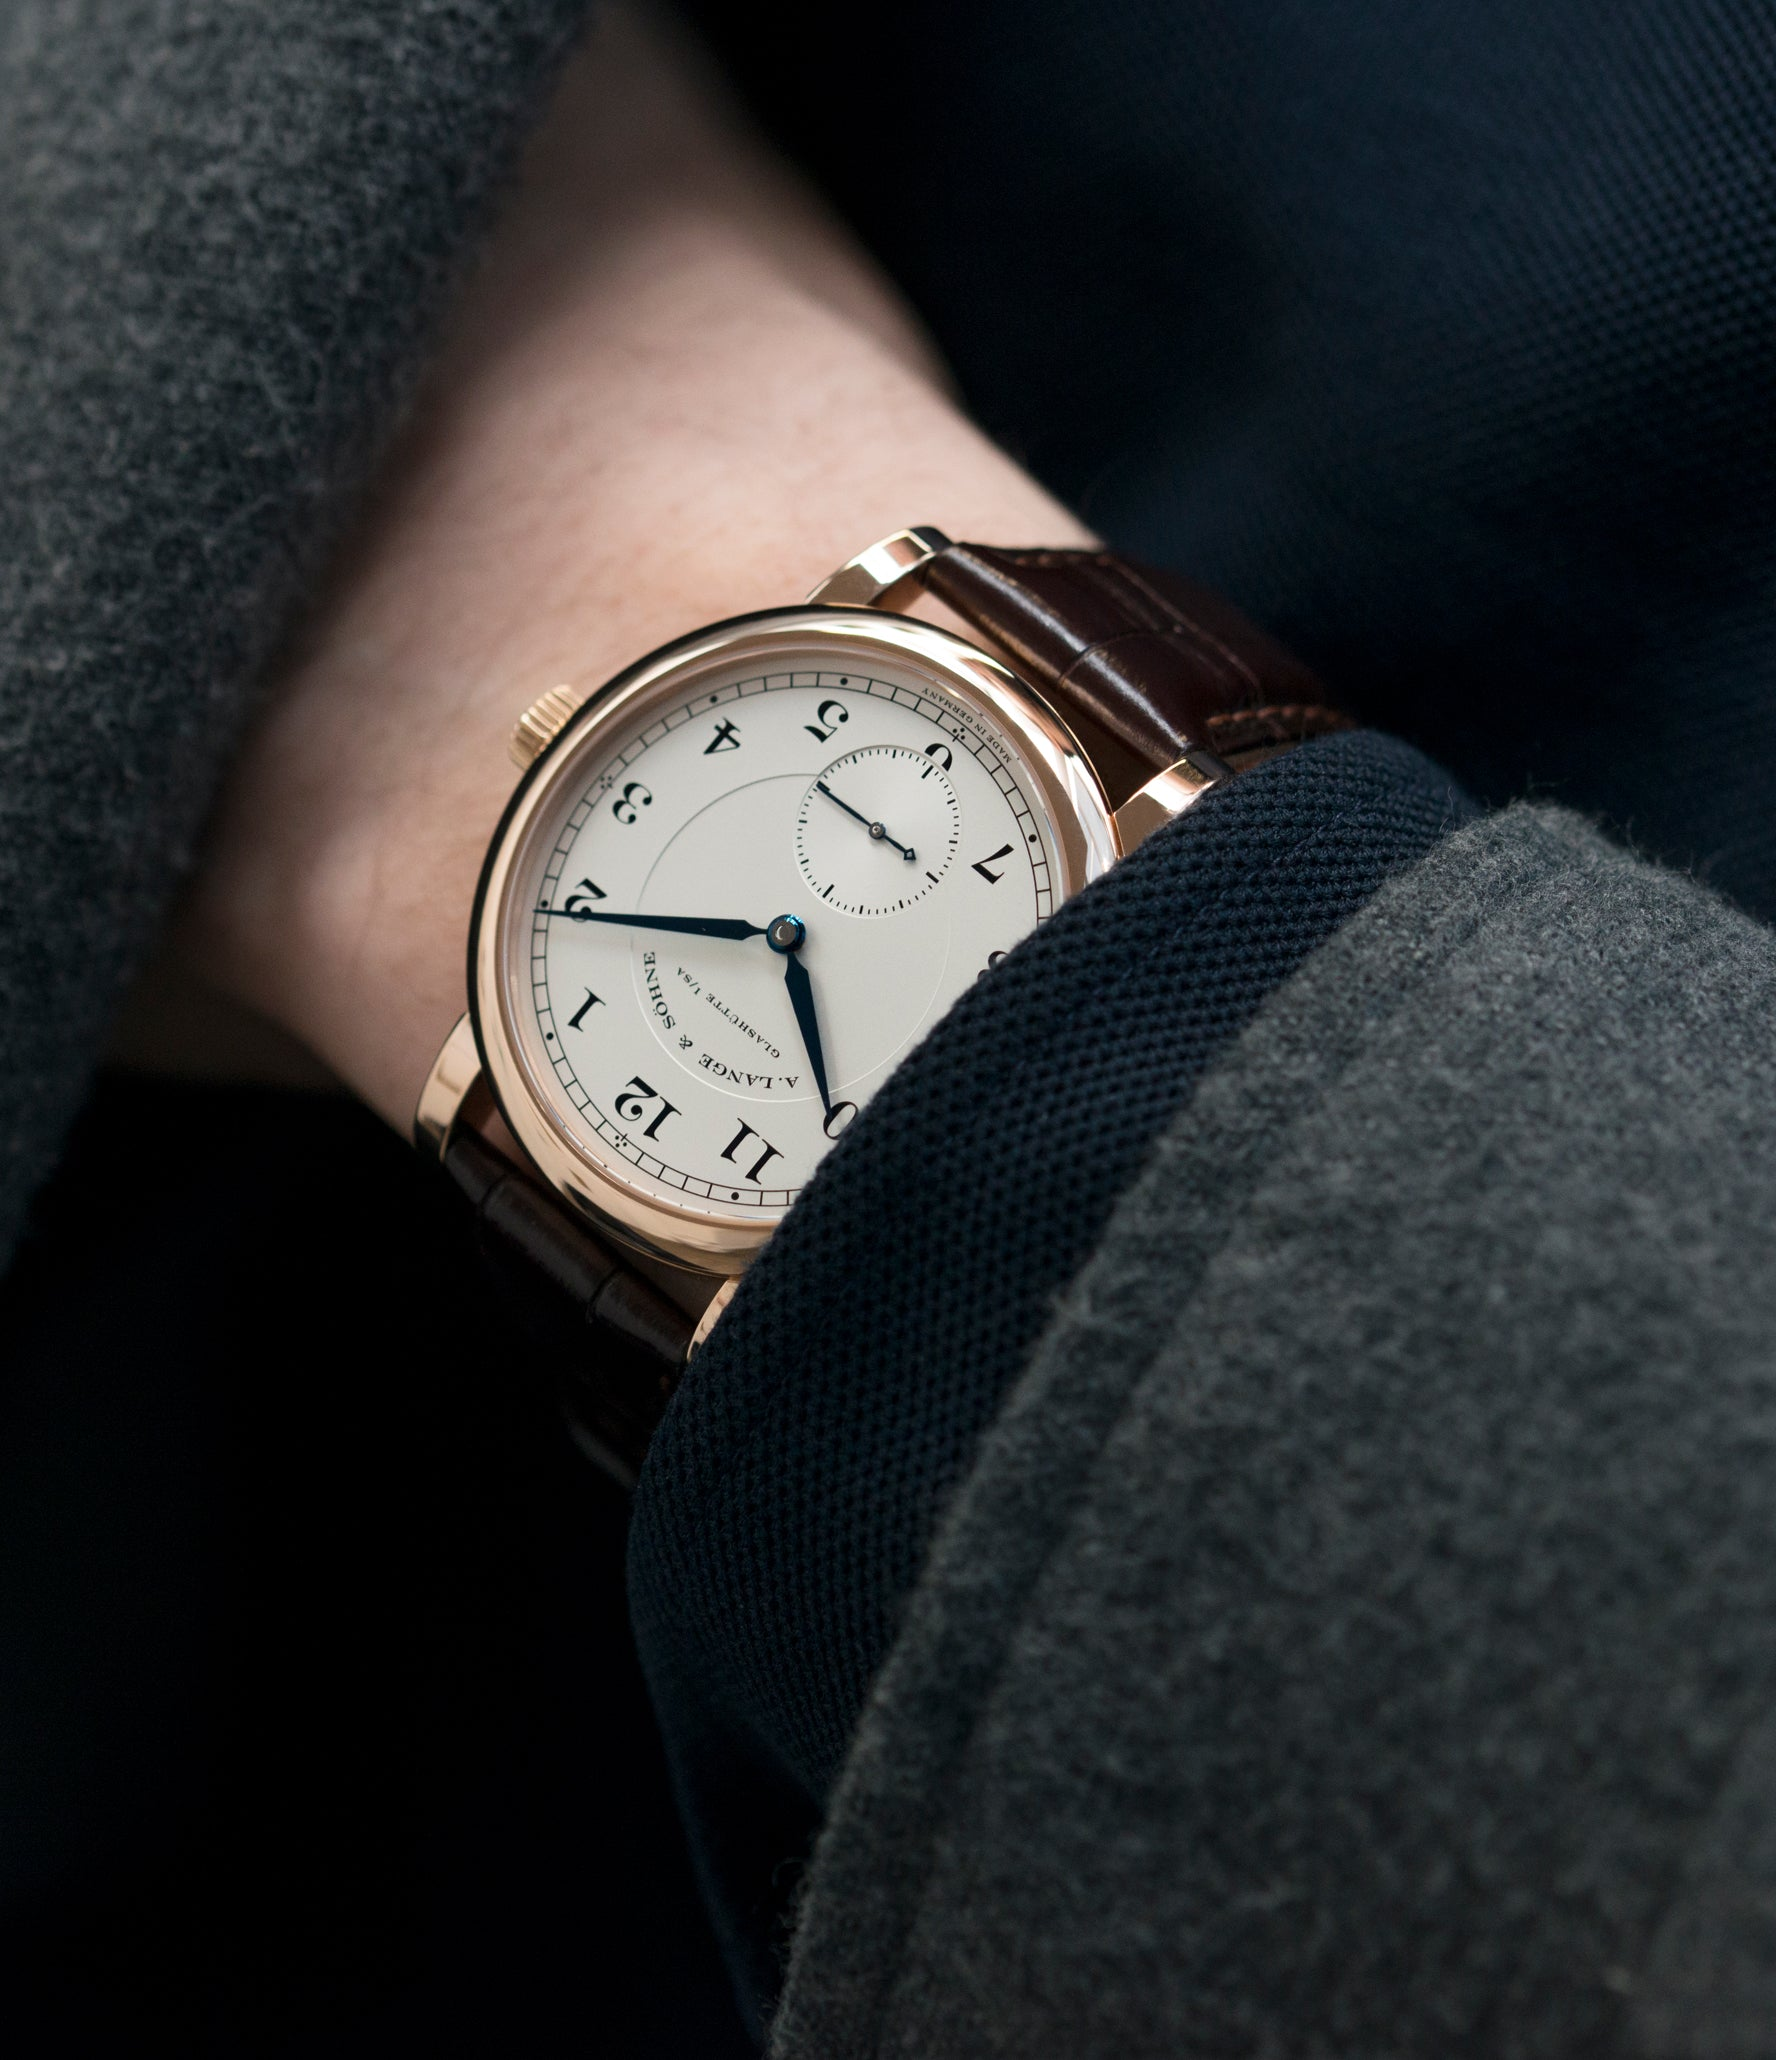 classic A. Lange & Sohne 1815 233.032 rose gold dress watch for sale online at A Collected Man London Uk specialist of preowned luxury watches